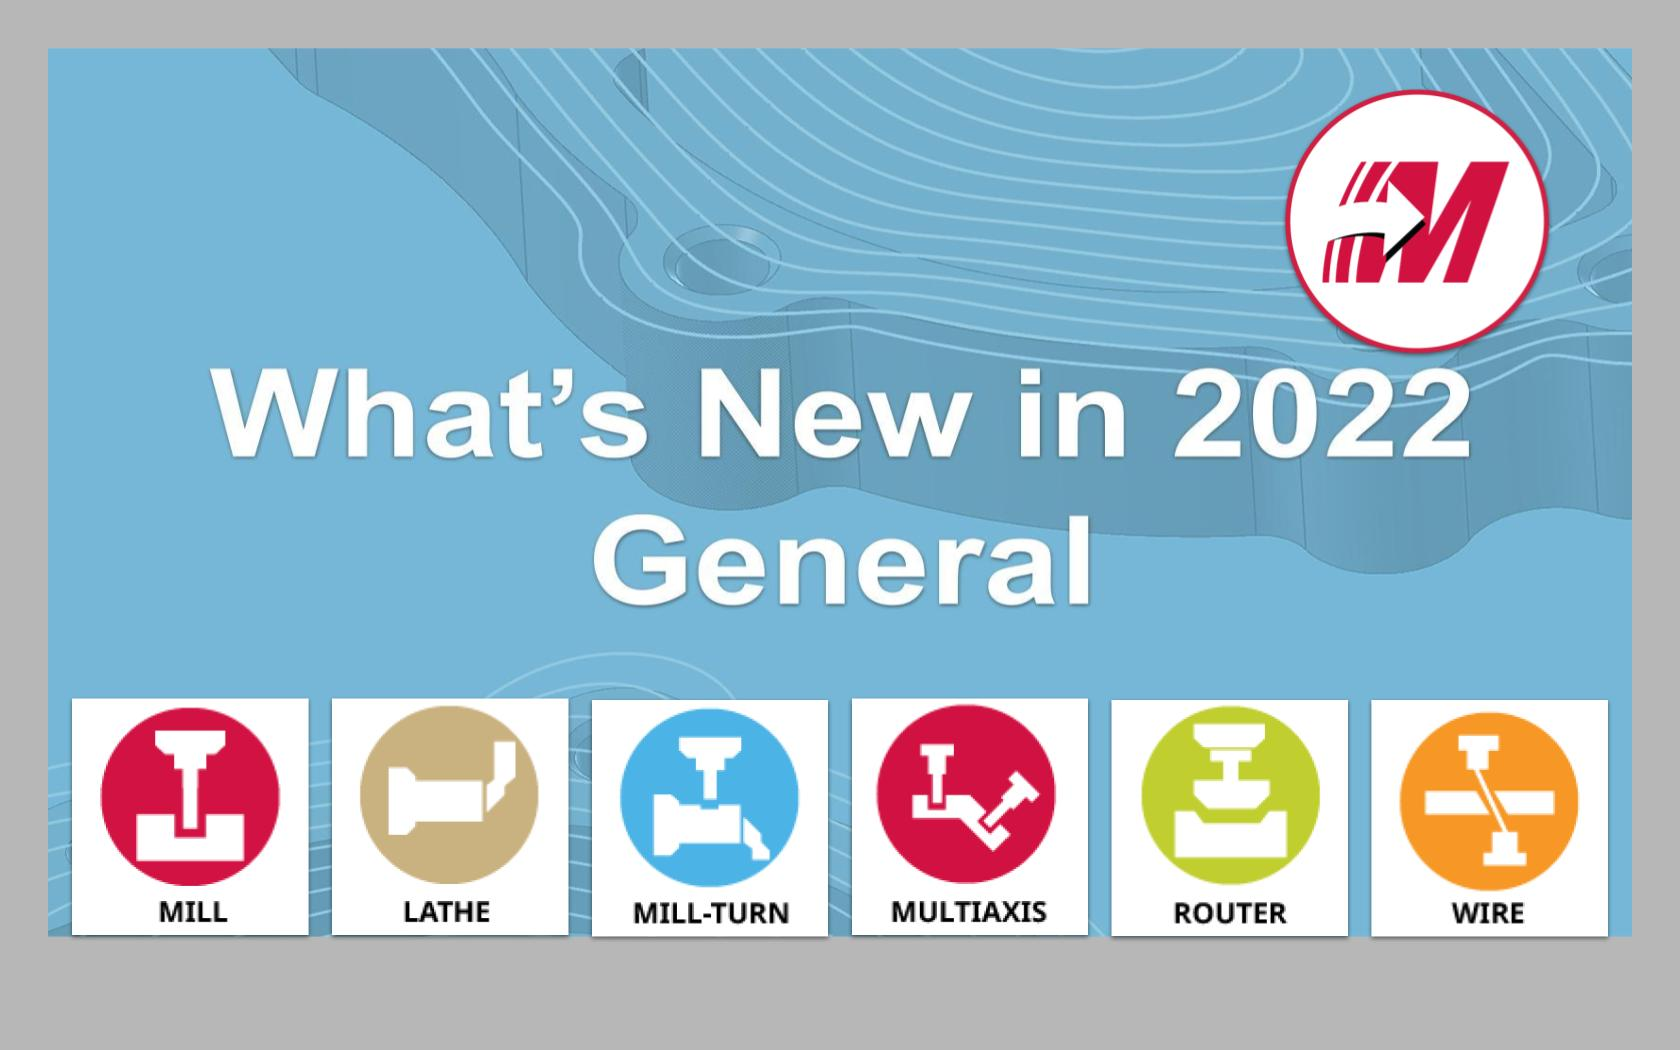 What's New in 2022 - General